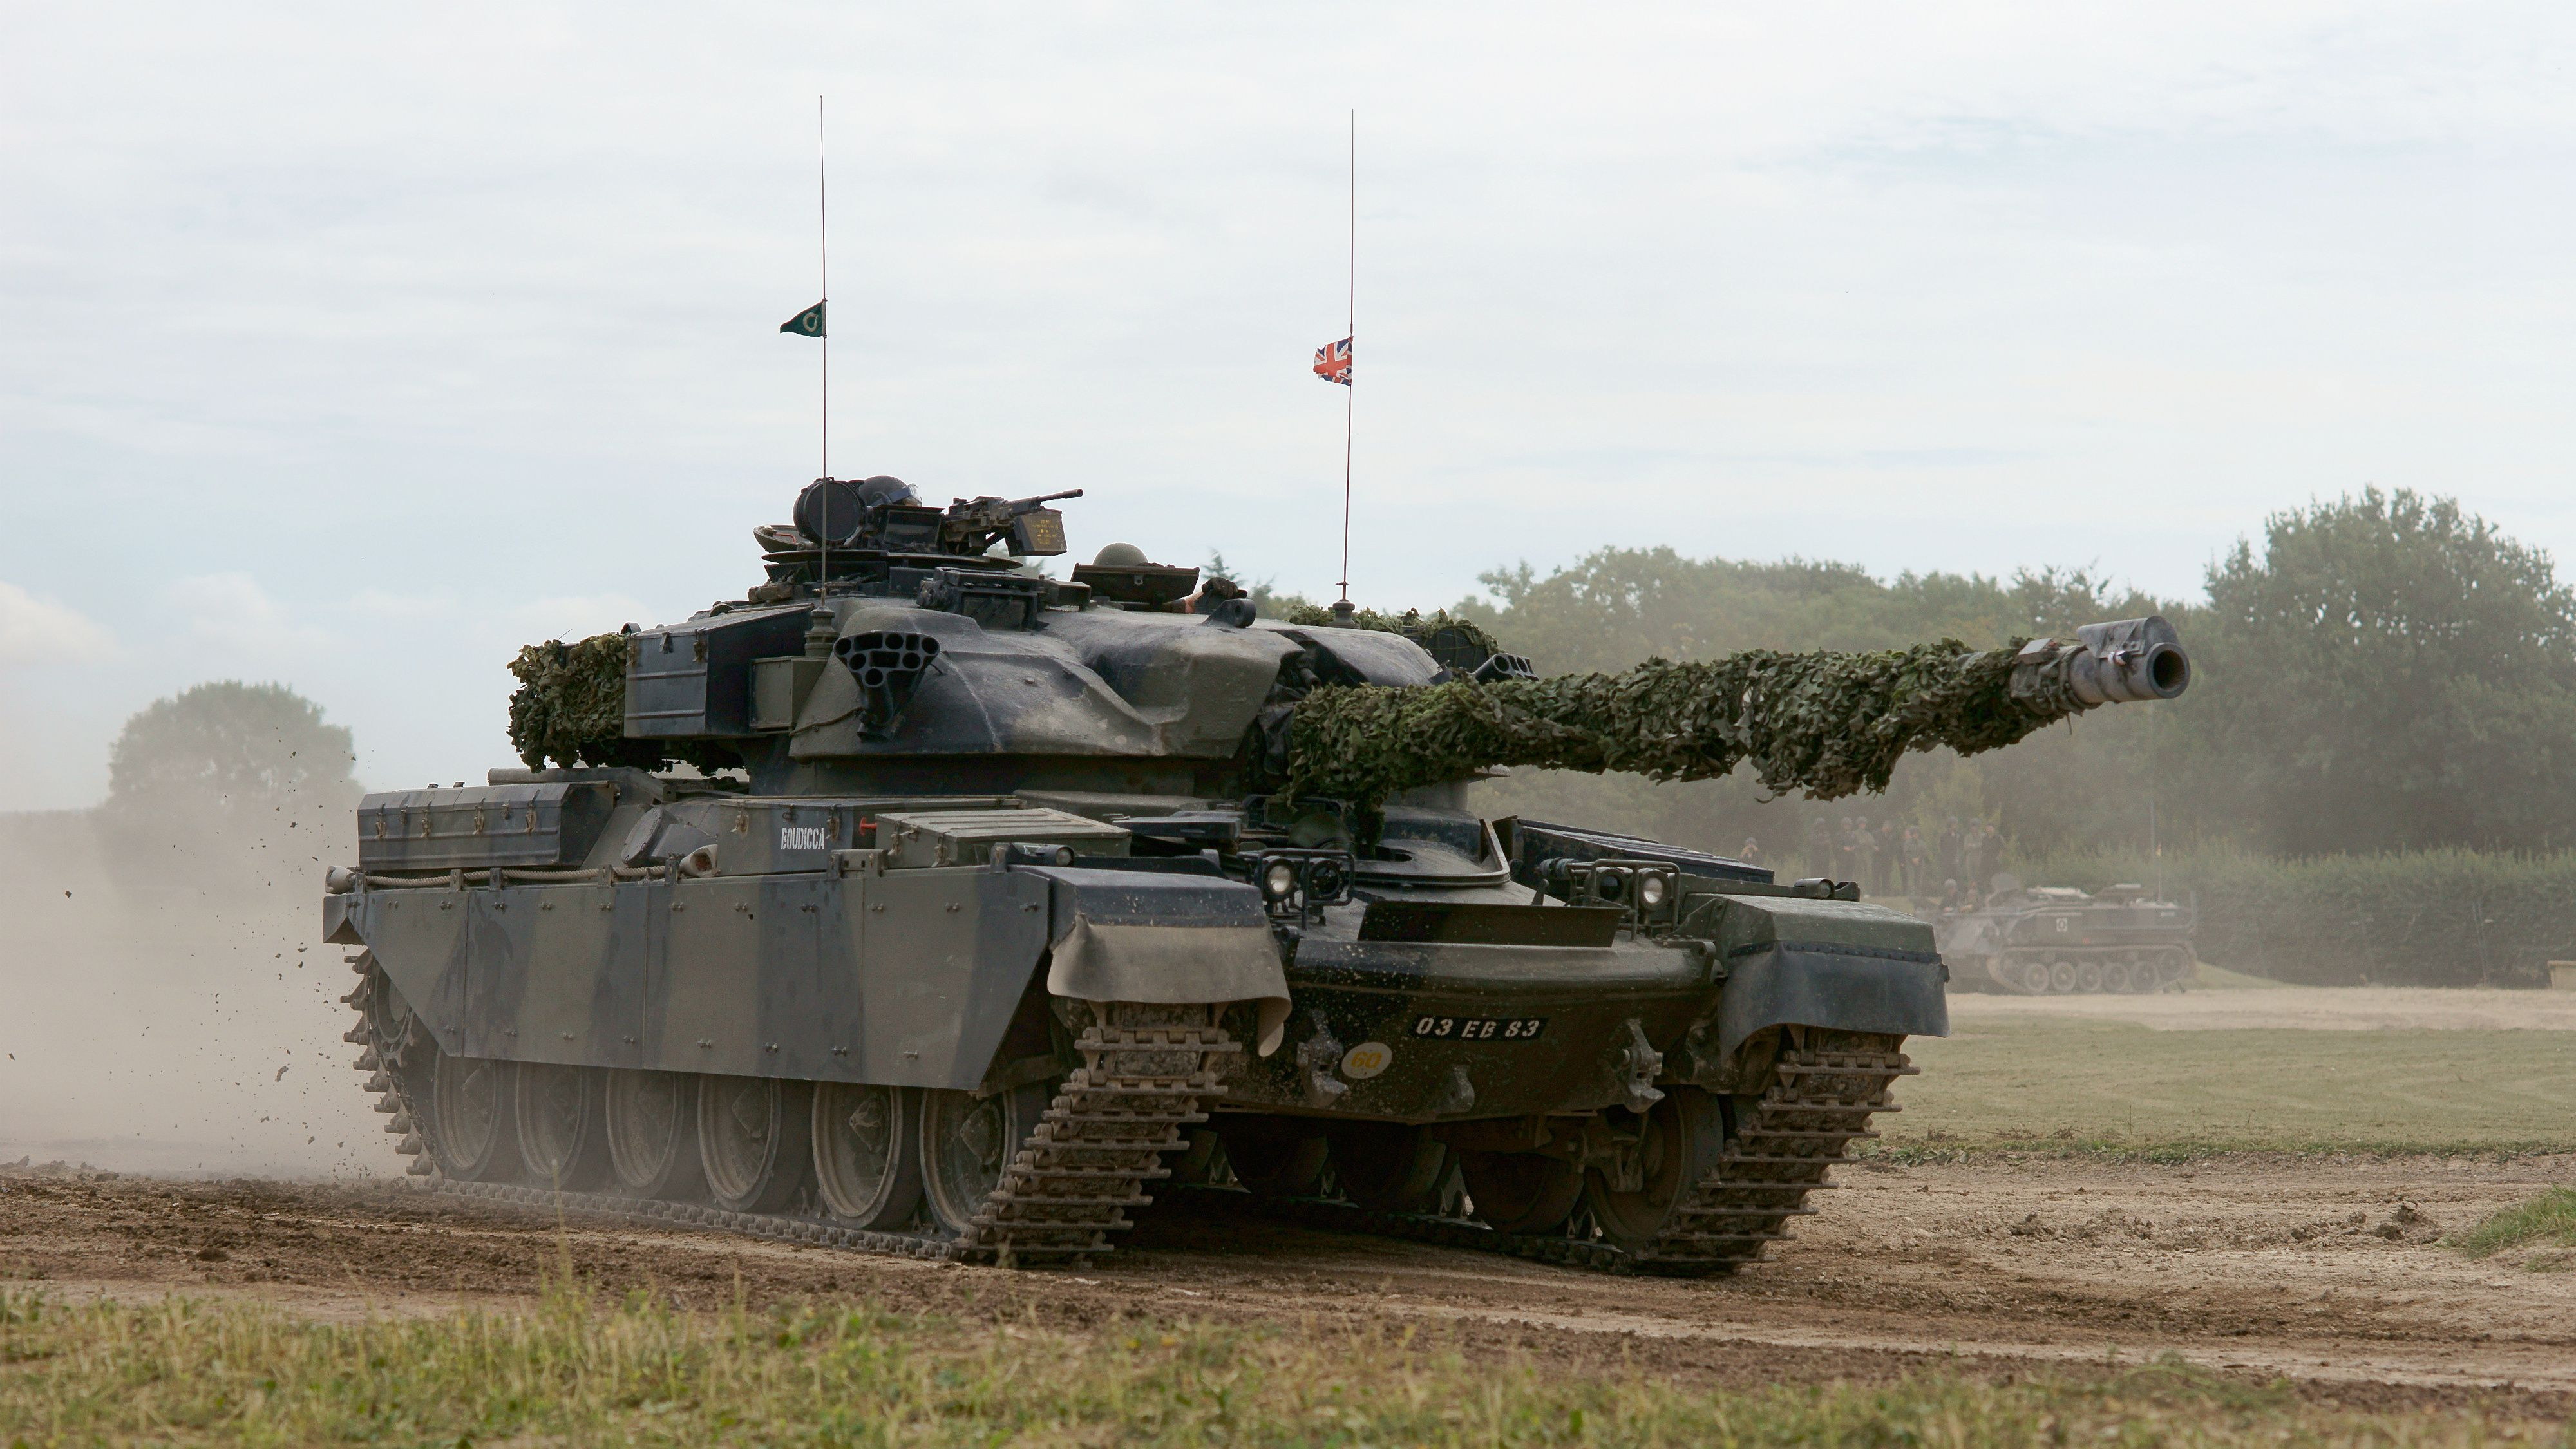 Old army tank photo